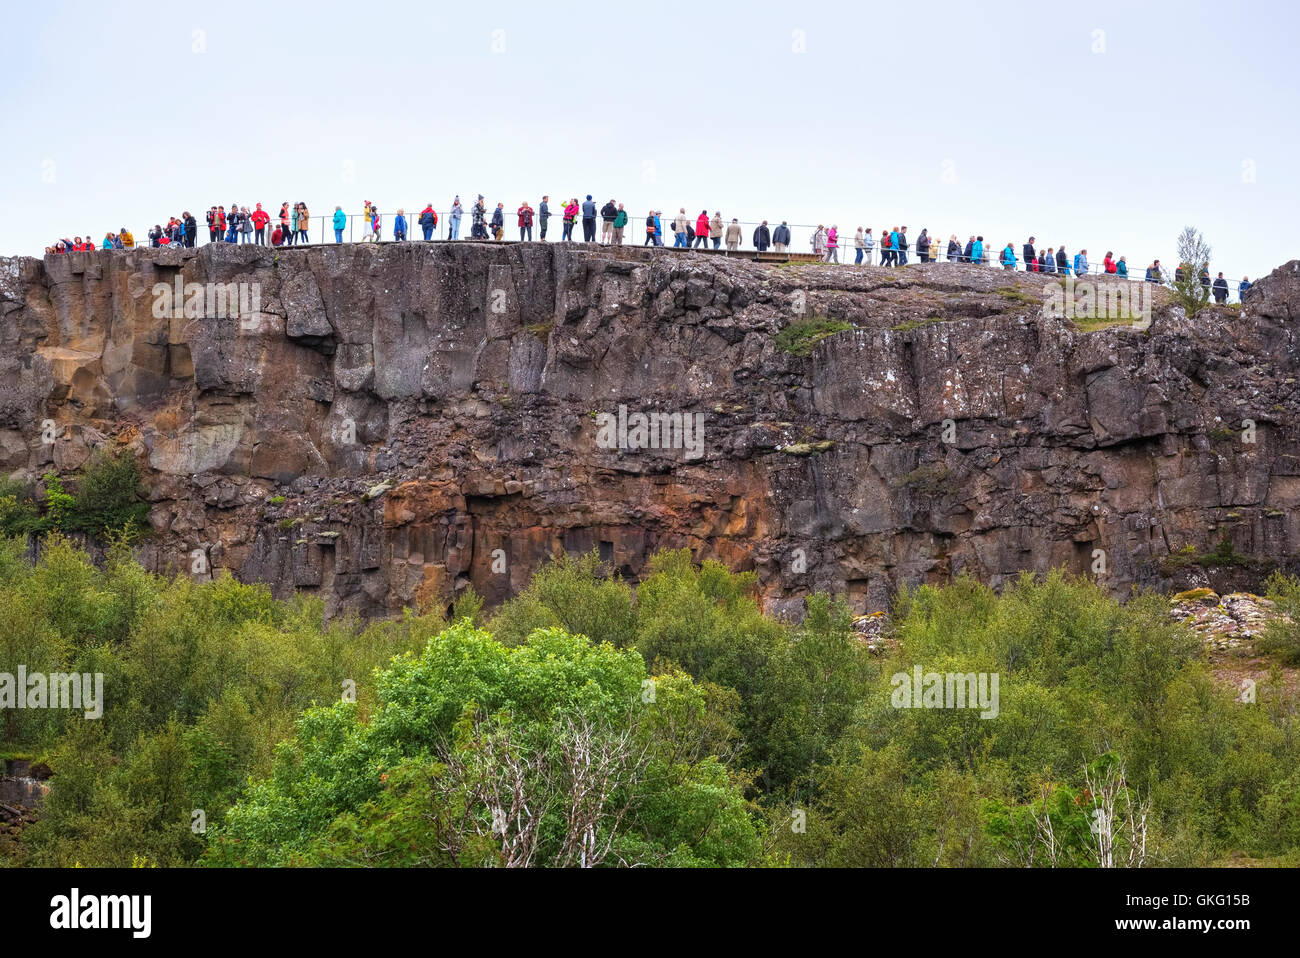 Massentourismus im Nationalpark Thingvellir, Mid-Atlantic Ridge, Golden Circle, Island Stockbild